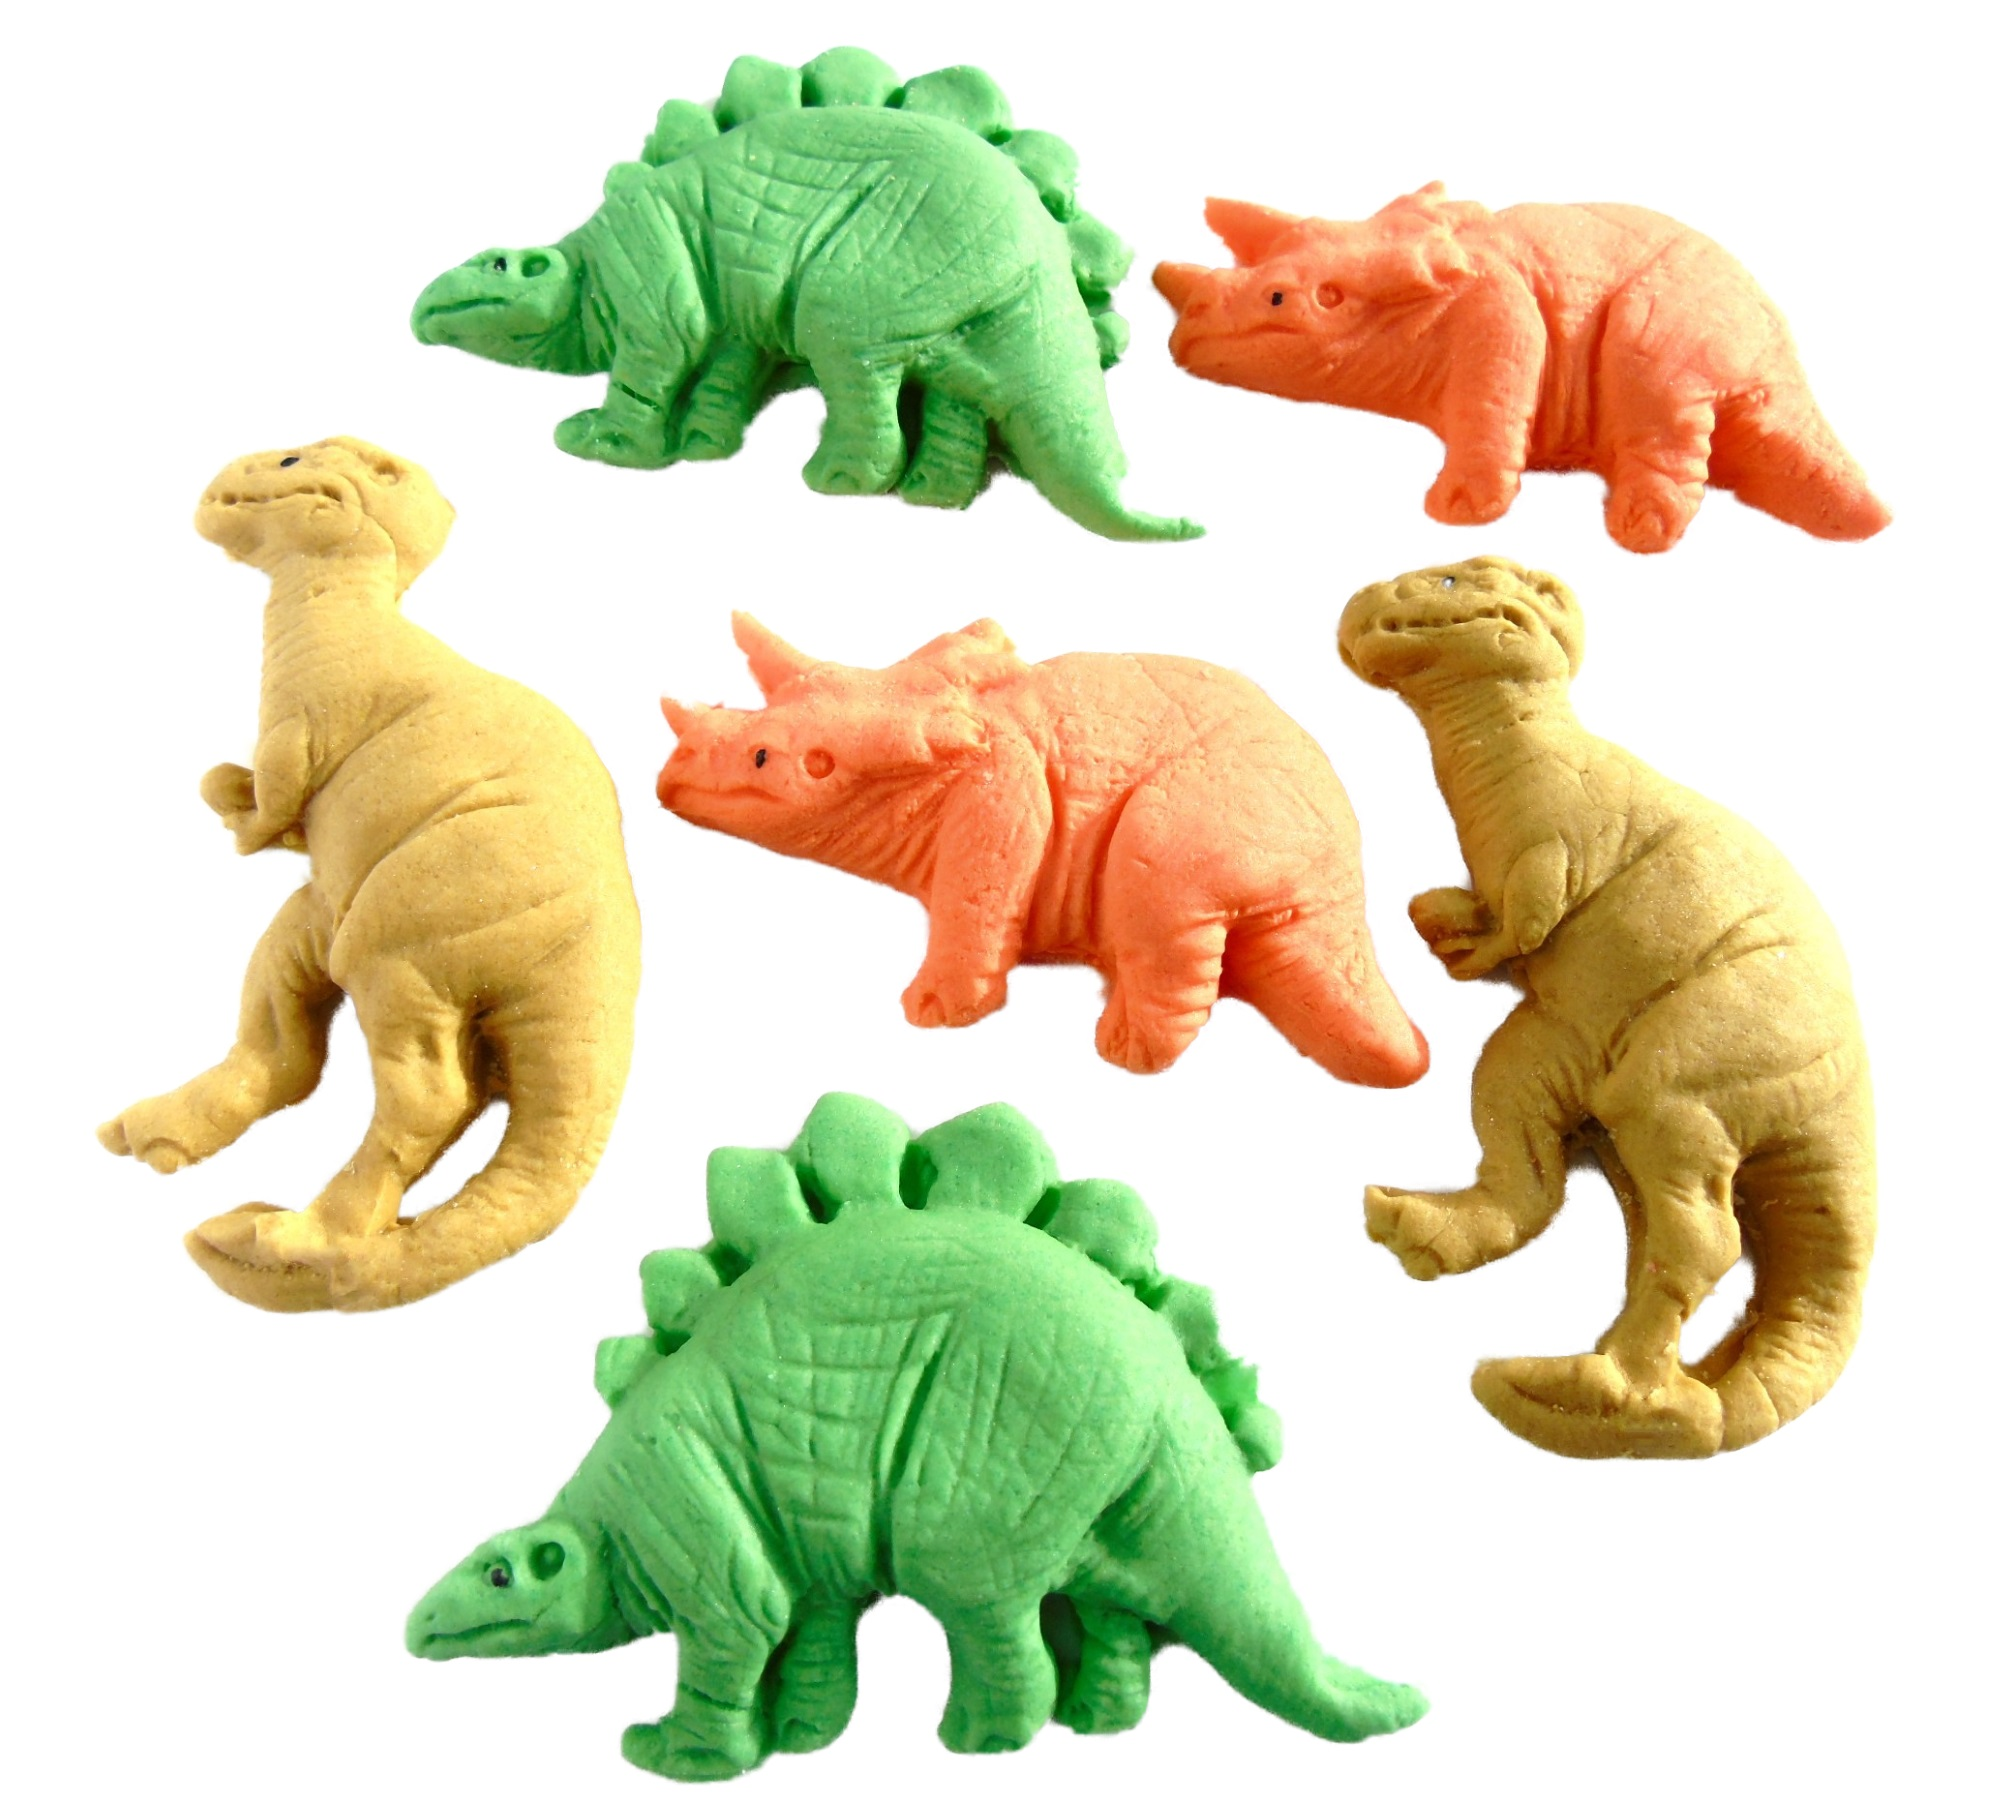 Outstanding 6 Mixed Novelty Edible Dinosaurs Birthday Cake Decorations Personalised Birthday Cards Paralily Jamesorg